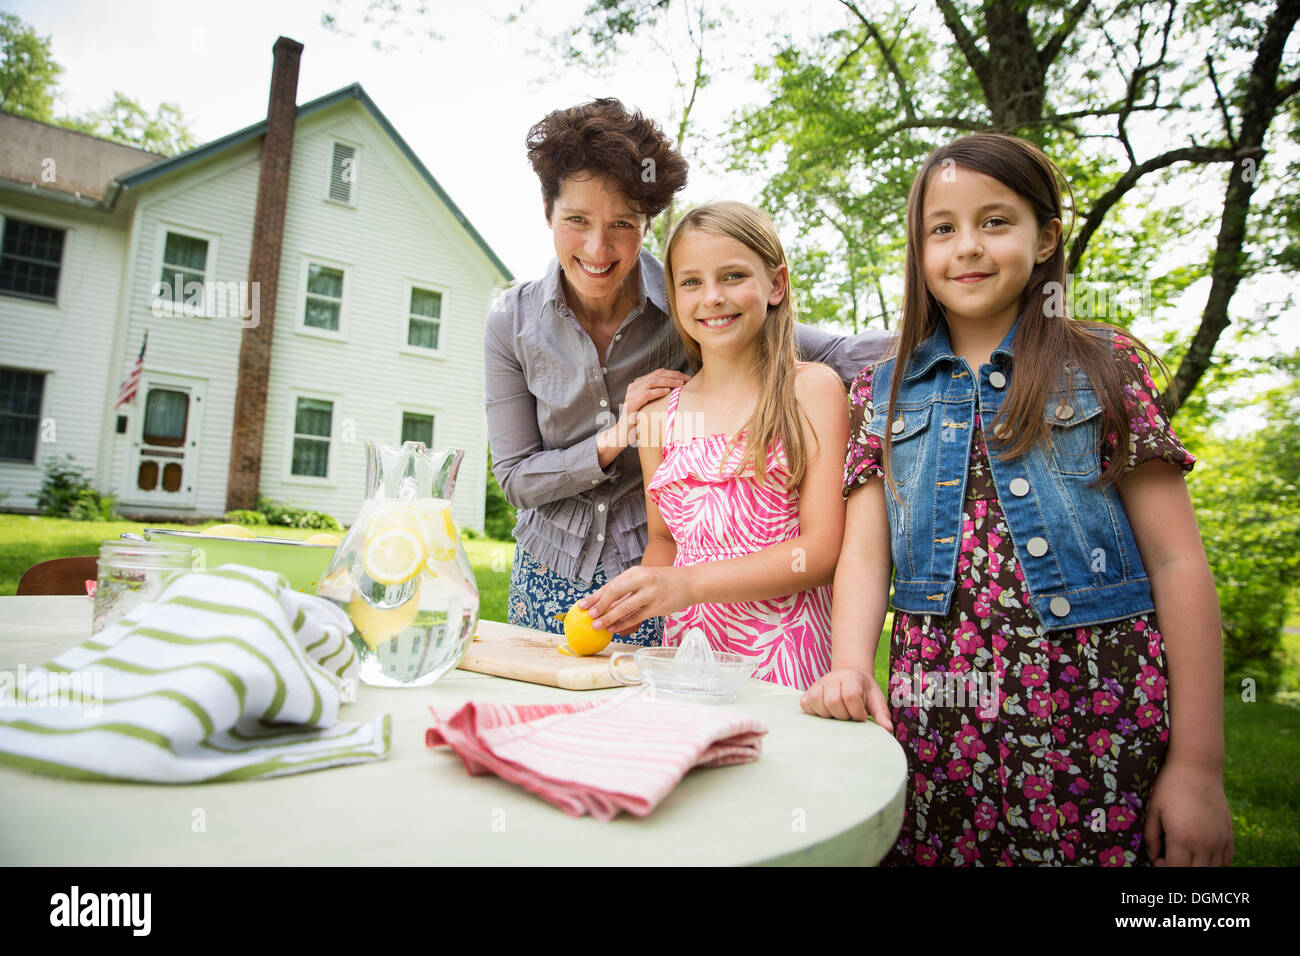 A summer family gathering at a farm. A woman and two children standing outside by a table, laying the table. Making lemonade. - Stock Image